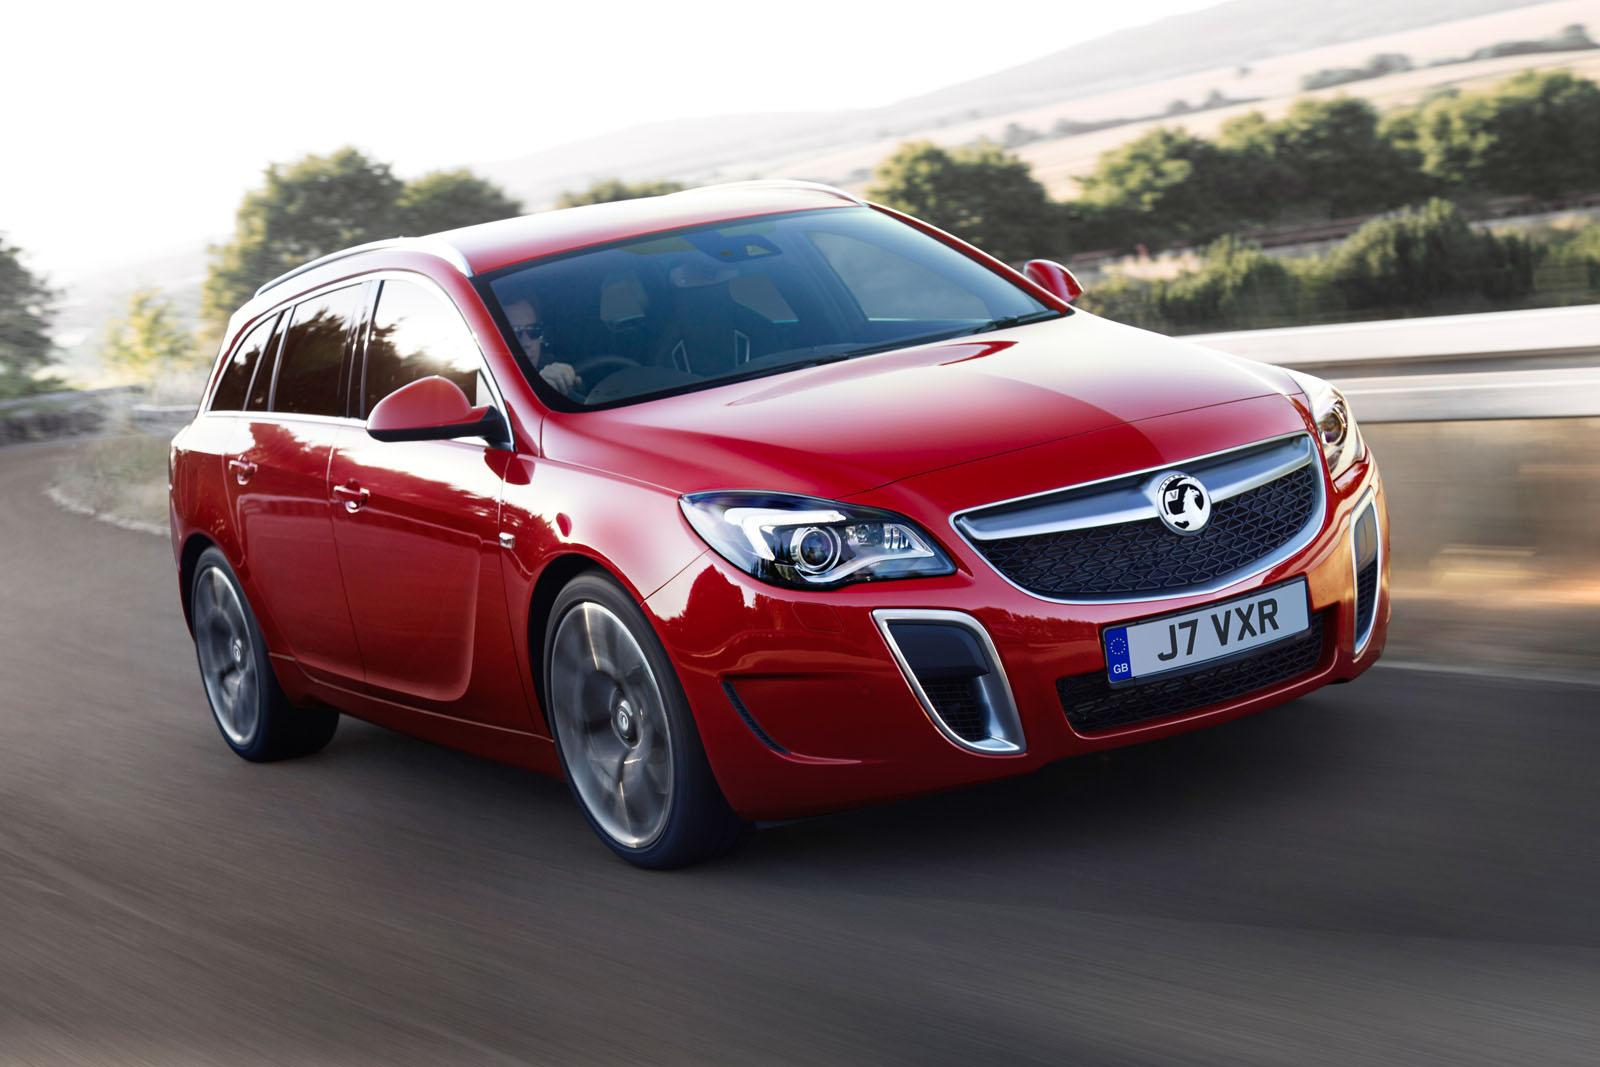 Vauxhall Insignia VXR SuperSport facelift